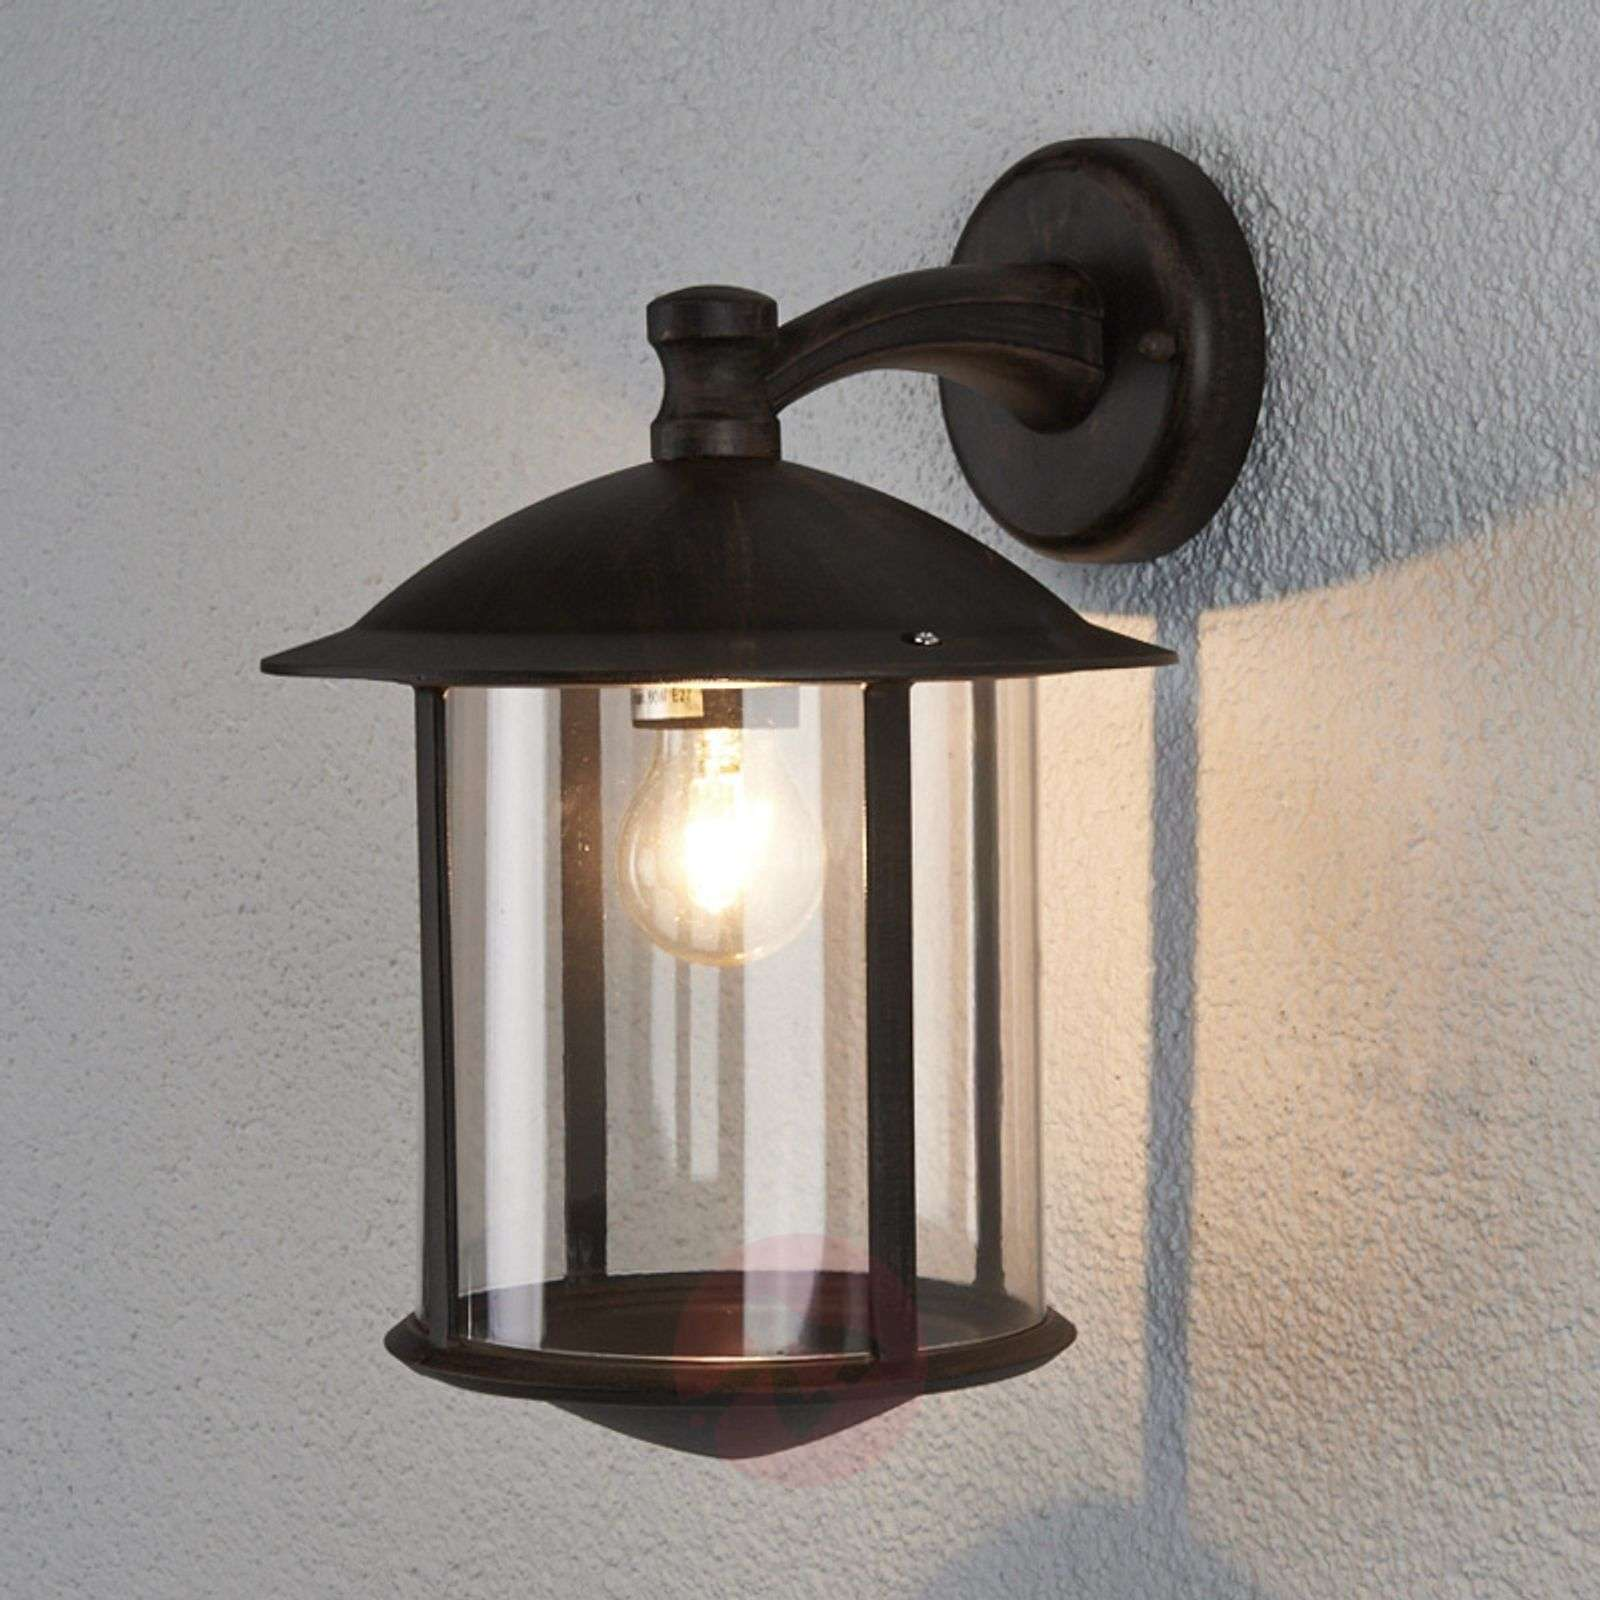 Plafoniera Da Esterno Ruggine : Acquista applique da esterno maelis color ruggine lampade